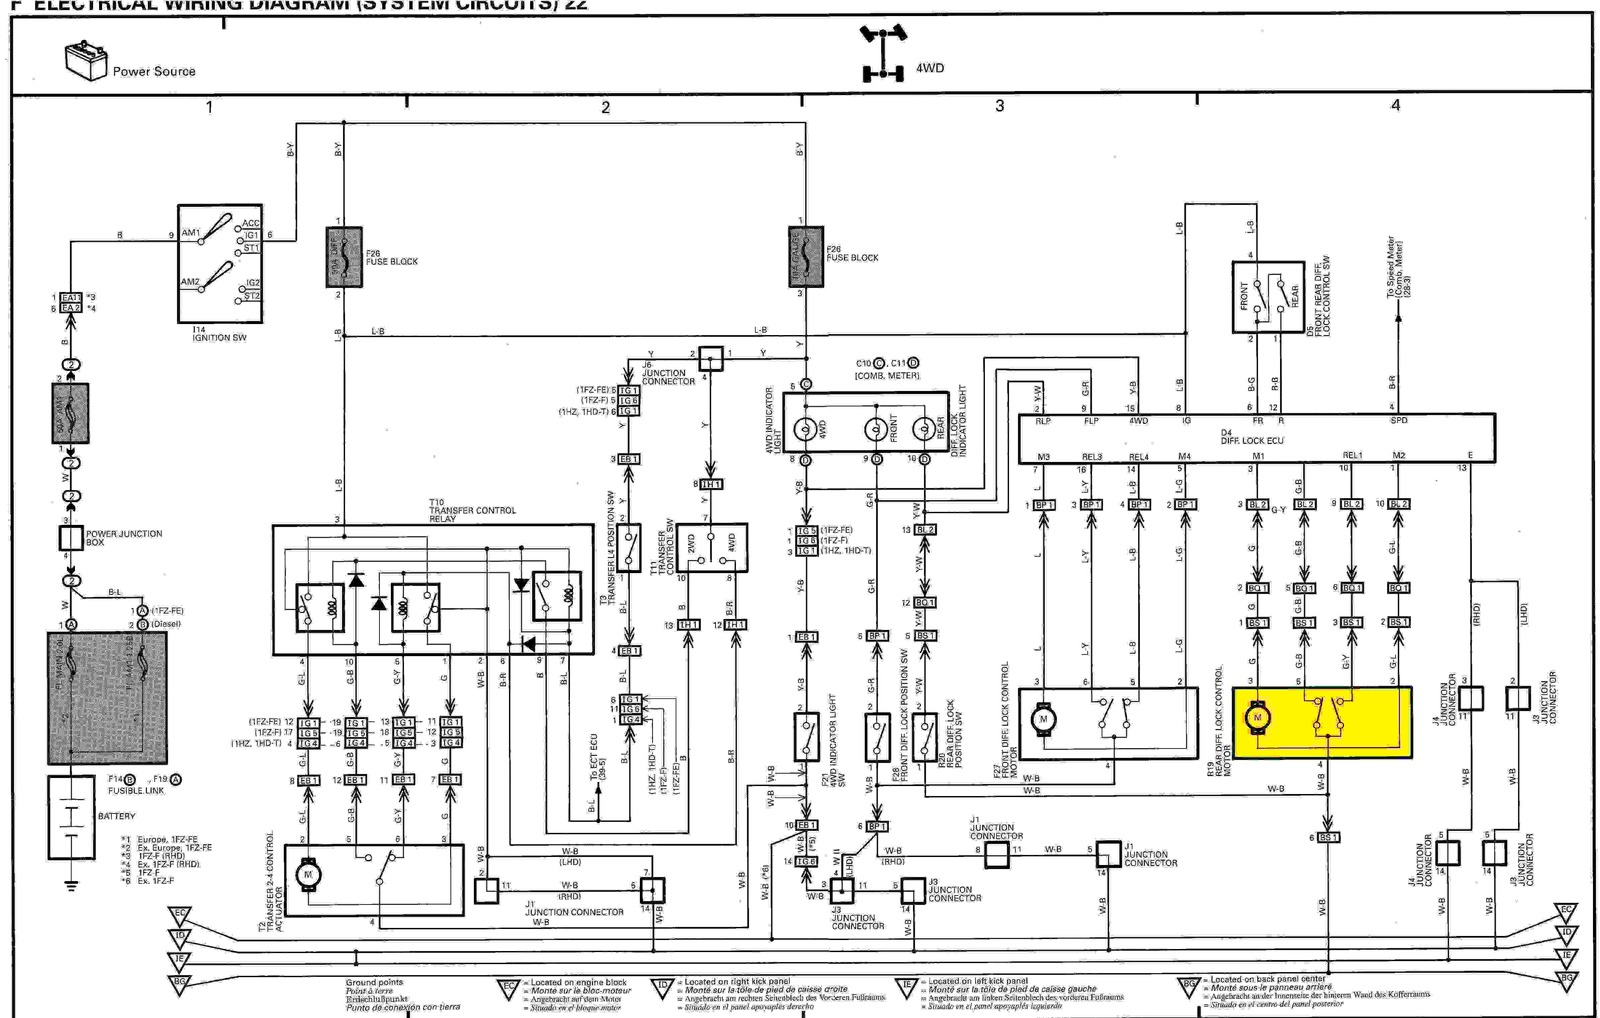 wiring diagram toyota landcruiser 79 series wiring diagram third level 1978 Land Cruiser Wiring-Diagram 100 series landcruiser wiring diagram wiring diagrams img 2017 toyota land cruiser series 70 79 series